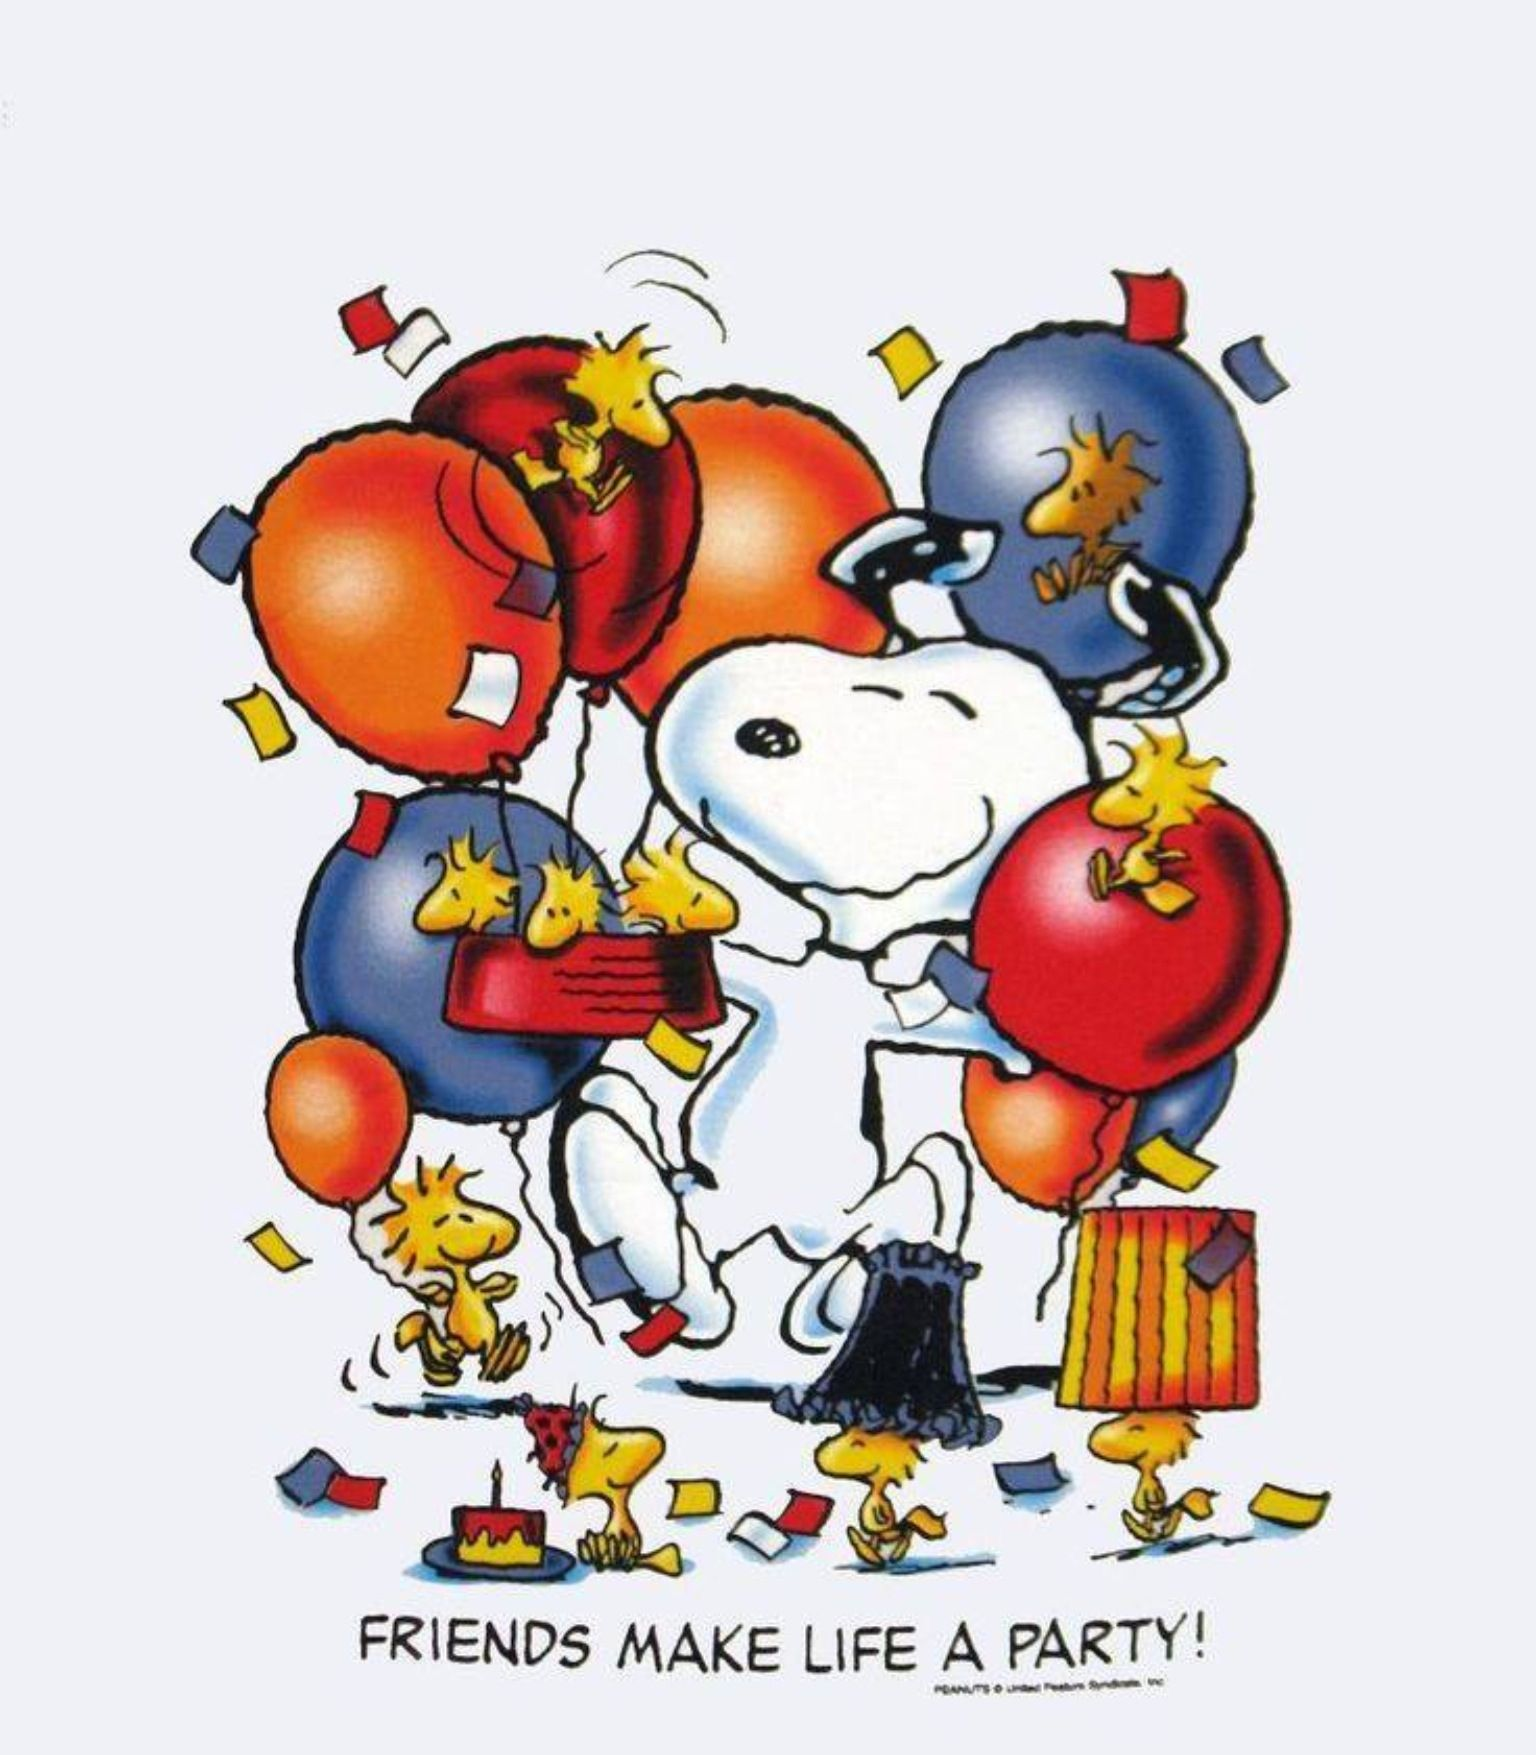 Snoopy & Woodstock-I Have This On A Shirt!